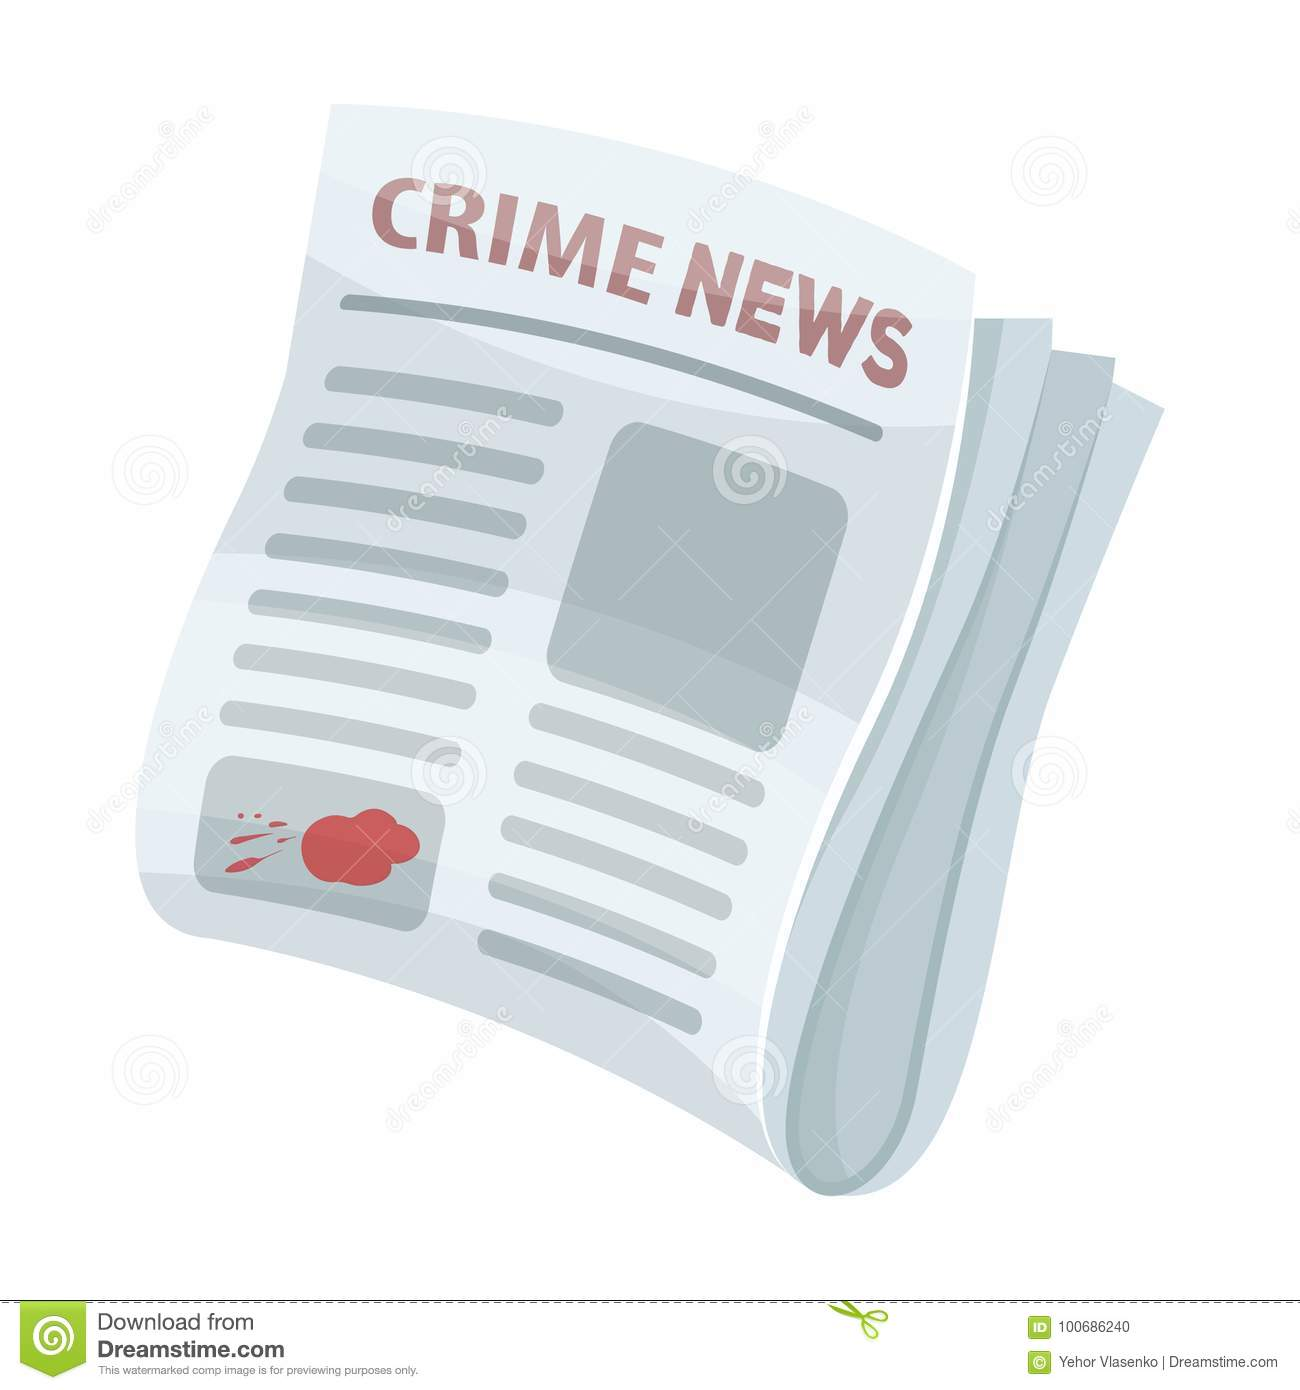 Newspaper Crime News Crime Article In The Press Single Icon In